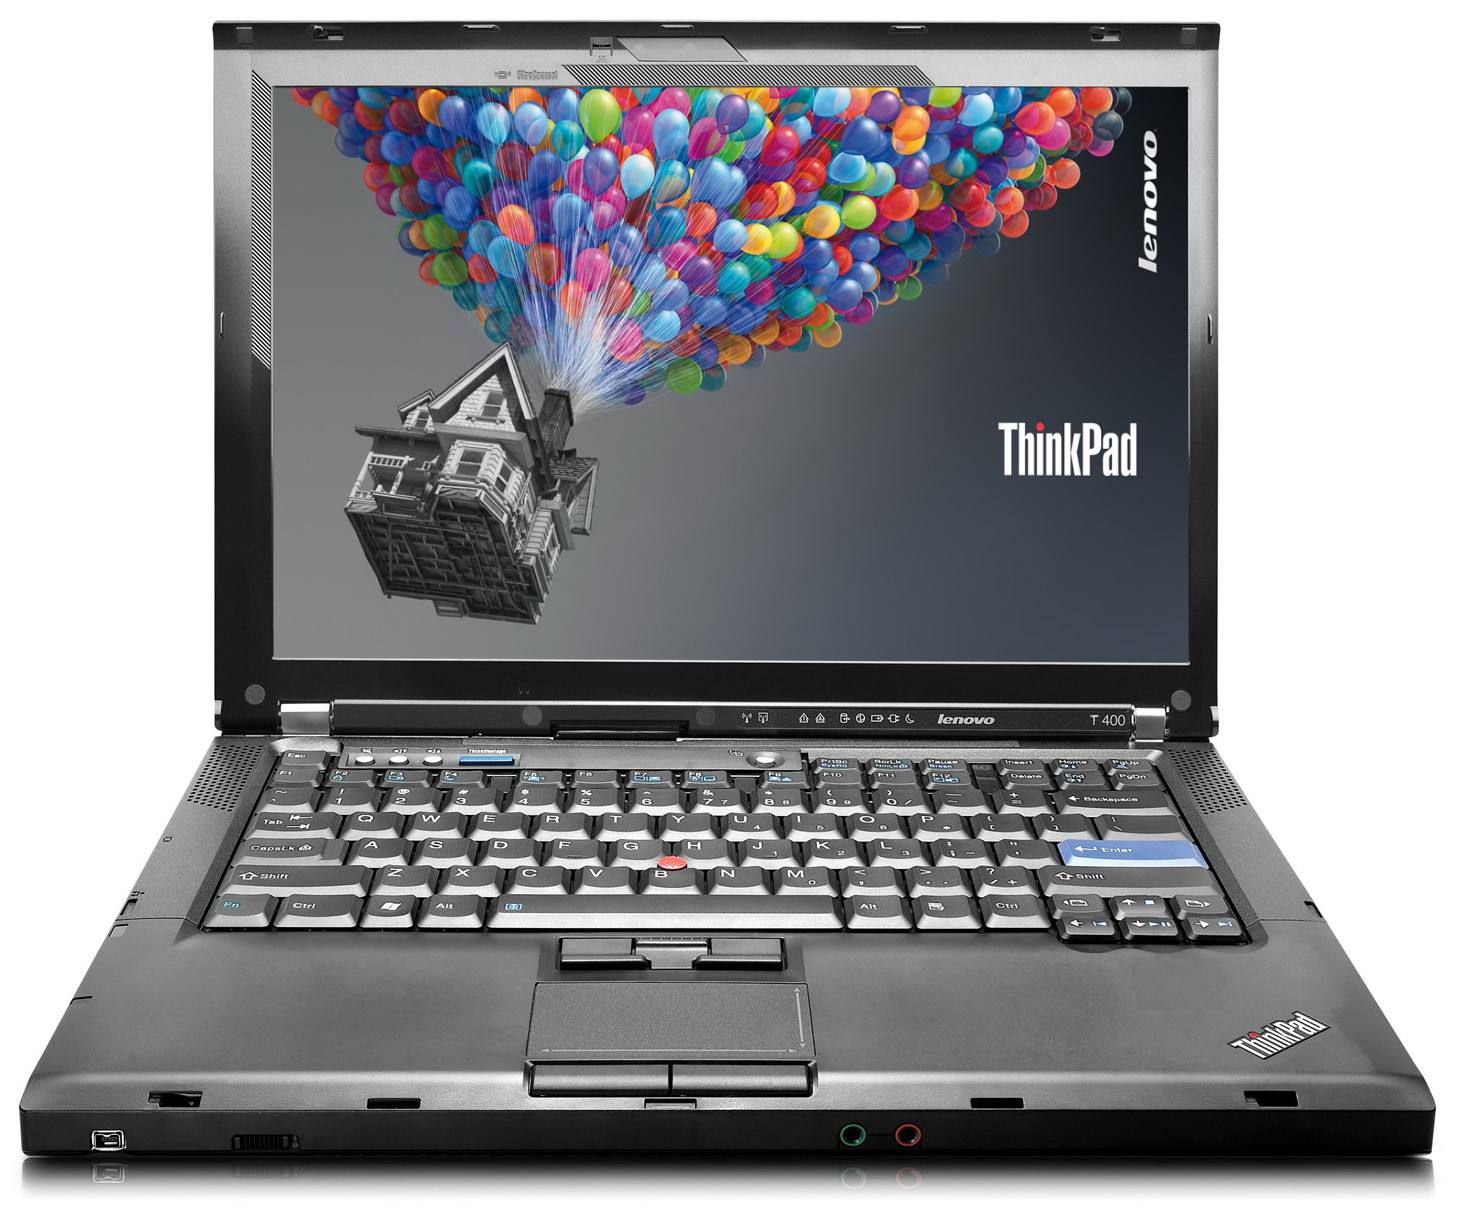 Lenovo ThinkPad T400_9